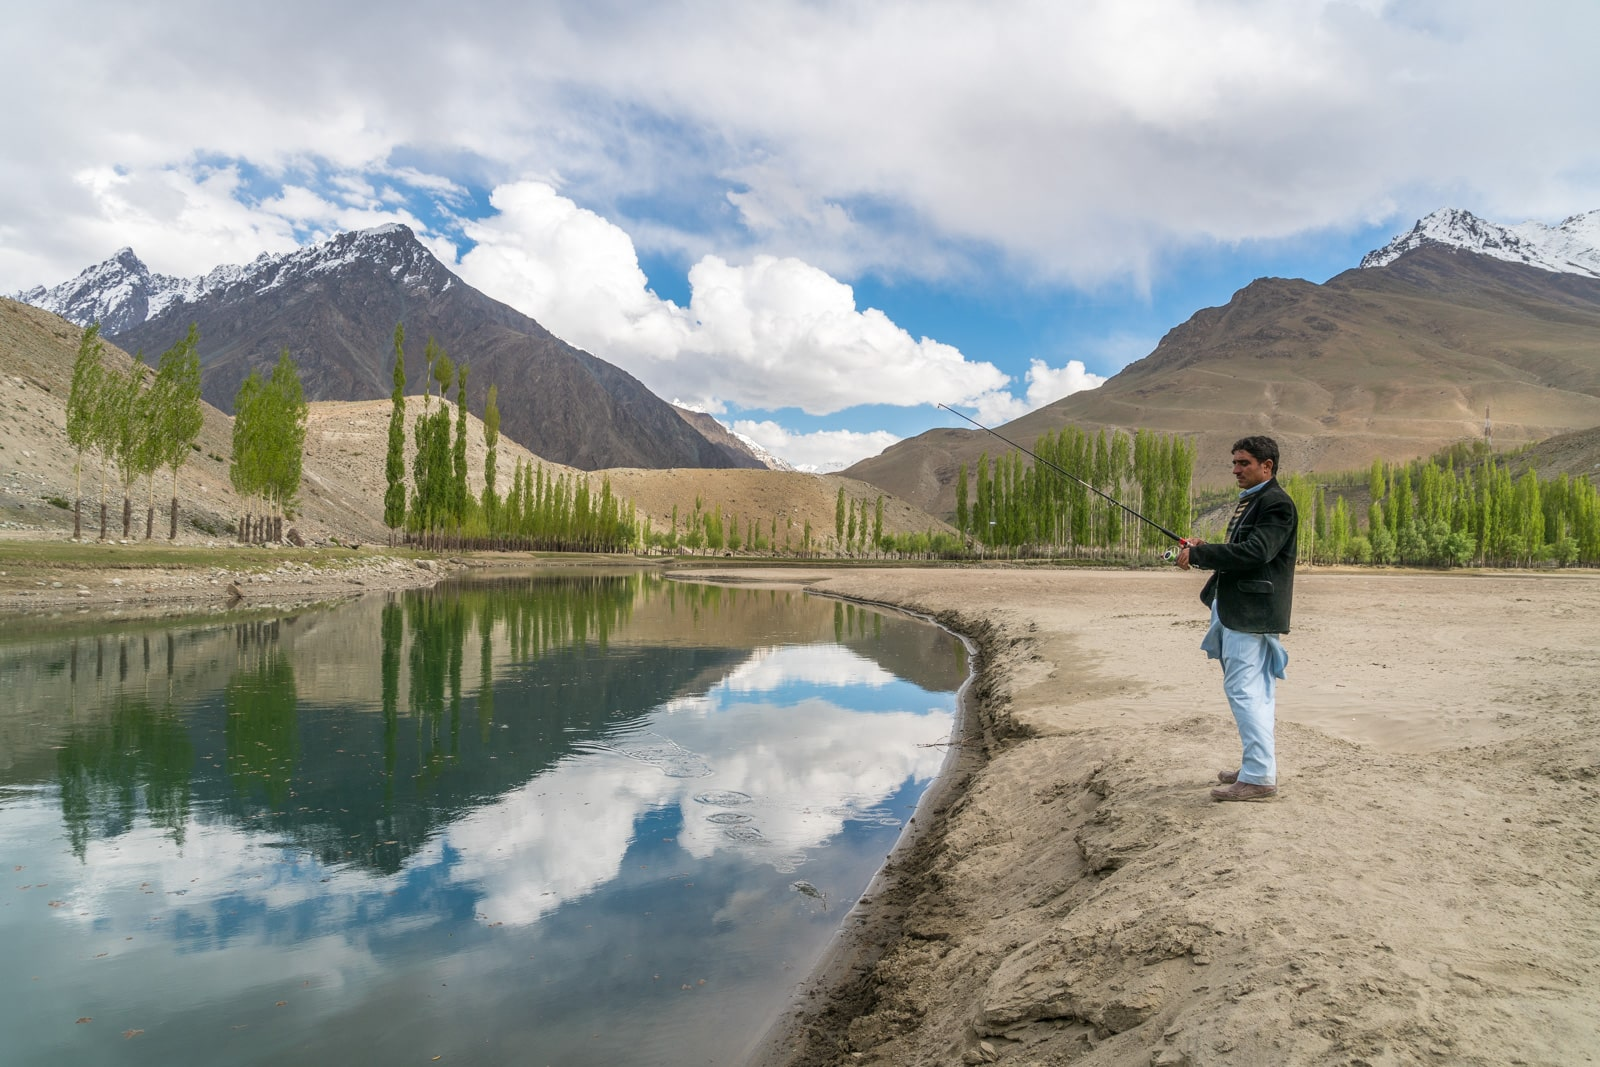 Phander Valley travel guide - Trout fishing in Phander, Pakistan - Lost With Purpose travel blog